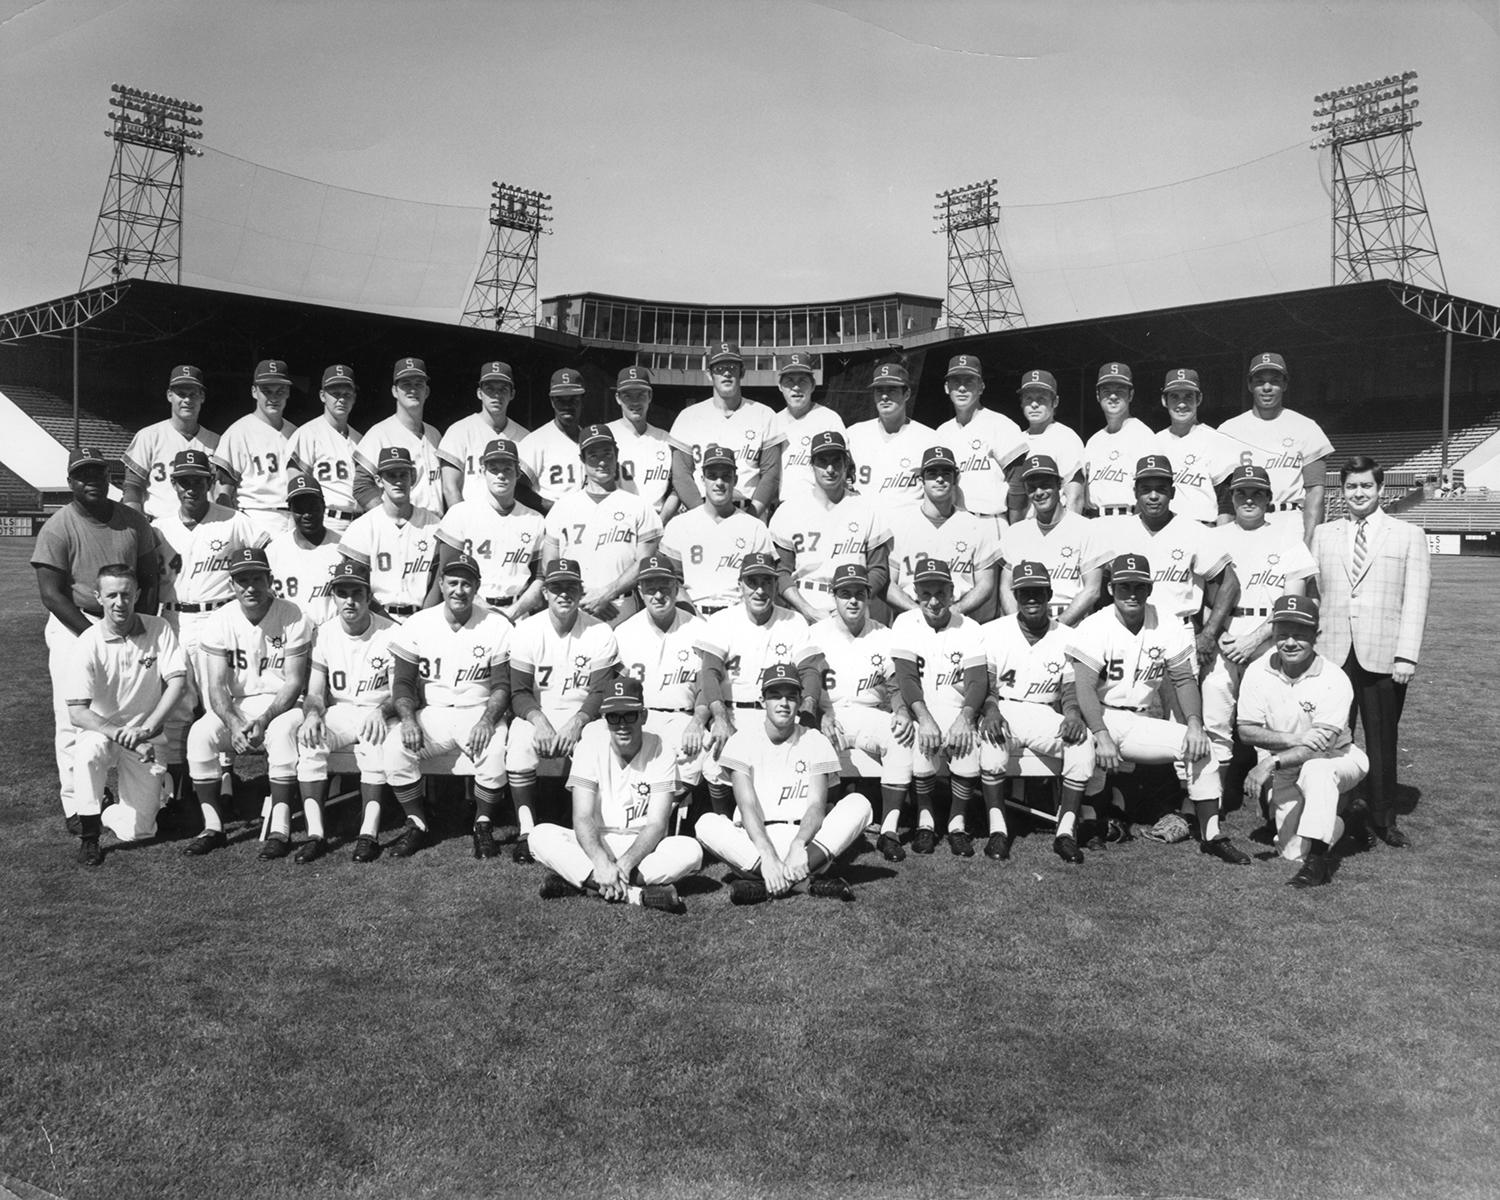 The Seattle Pilots viewed Gary Bell as the potential anchor to their inaugural pitching staff of 1969, and took him with the 21st pick of the expansion draft. He's pictured above on the top row, sixth from the right. (National Baseball Hall of Fame and Museum)